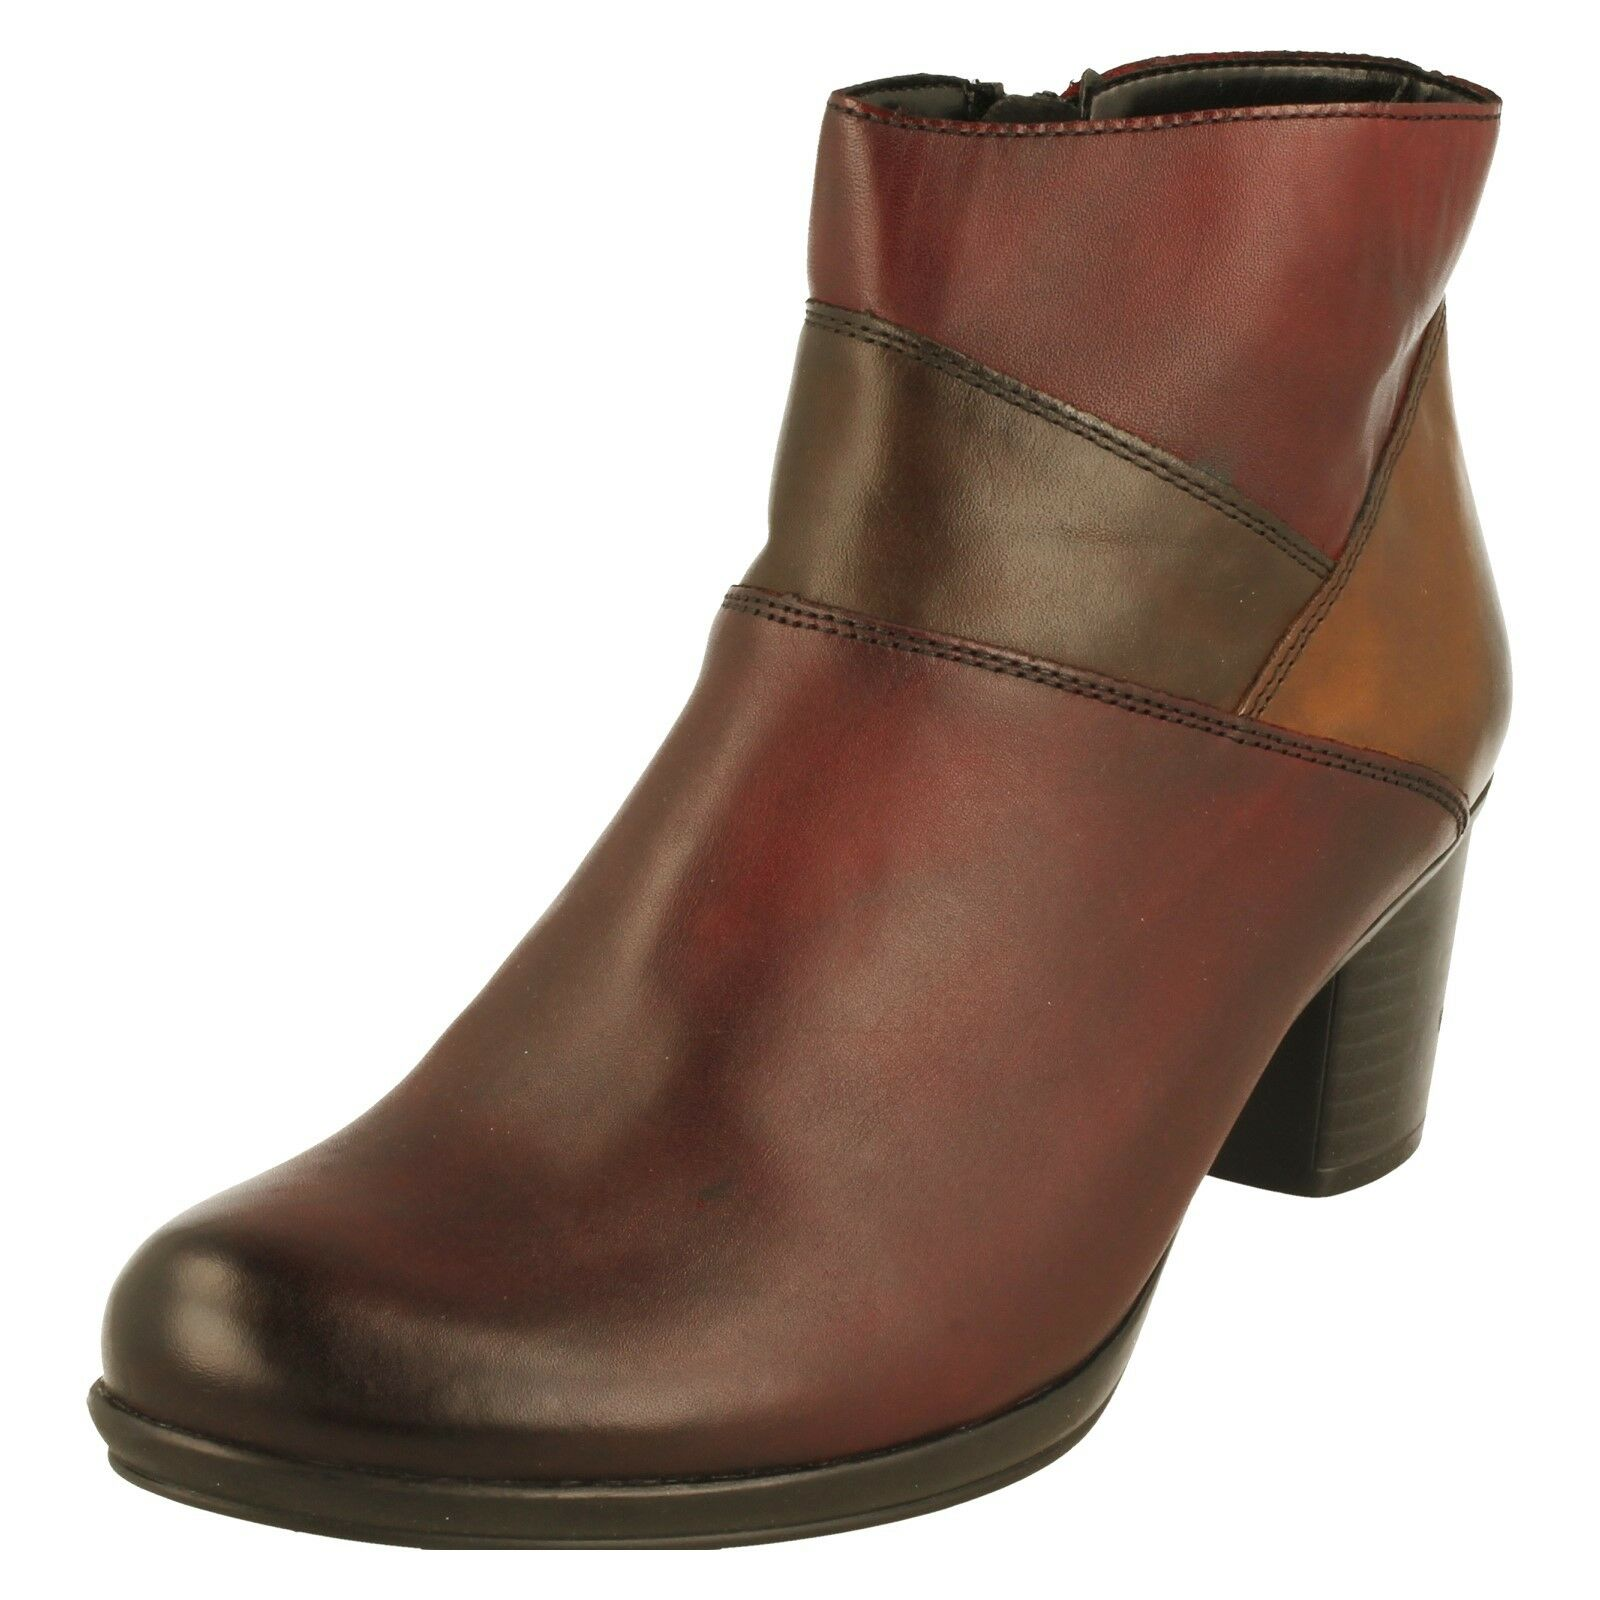 Gentleman/Lady Ladies Remonte Boots - R1573 Fine workmanship New style A balance between toughness and hardness